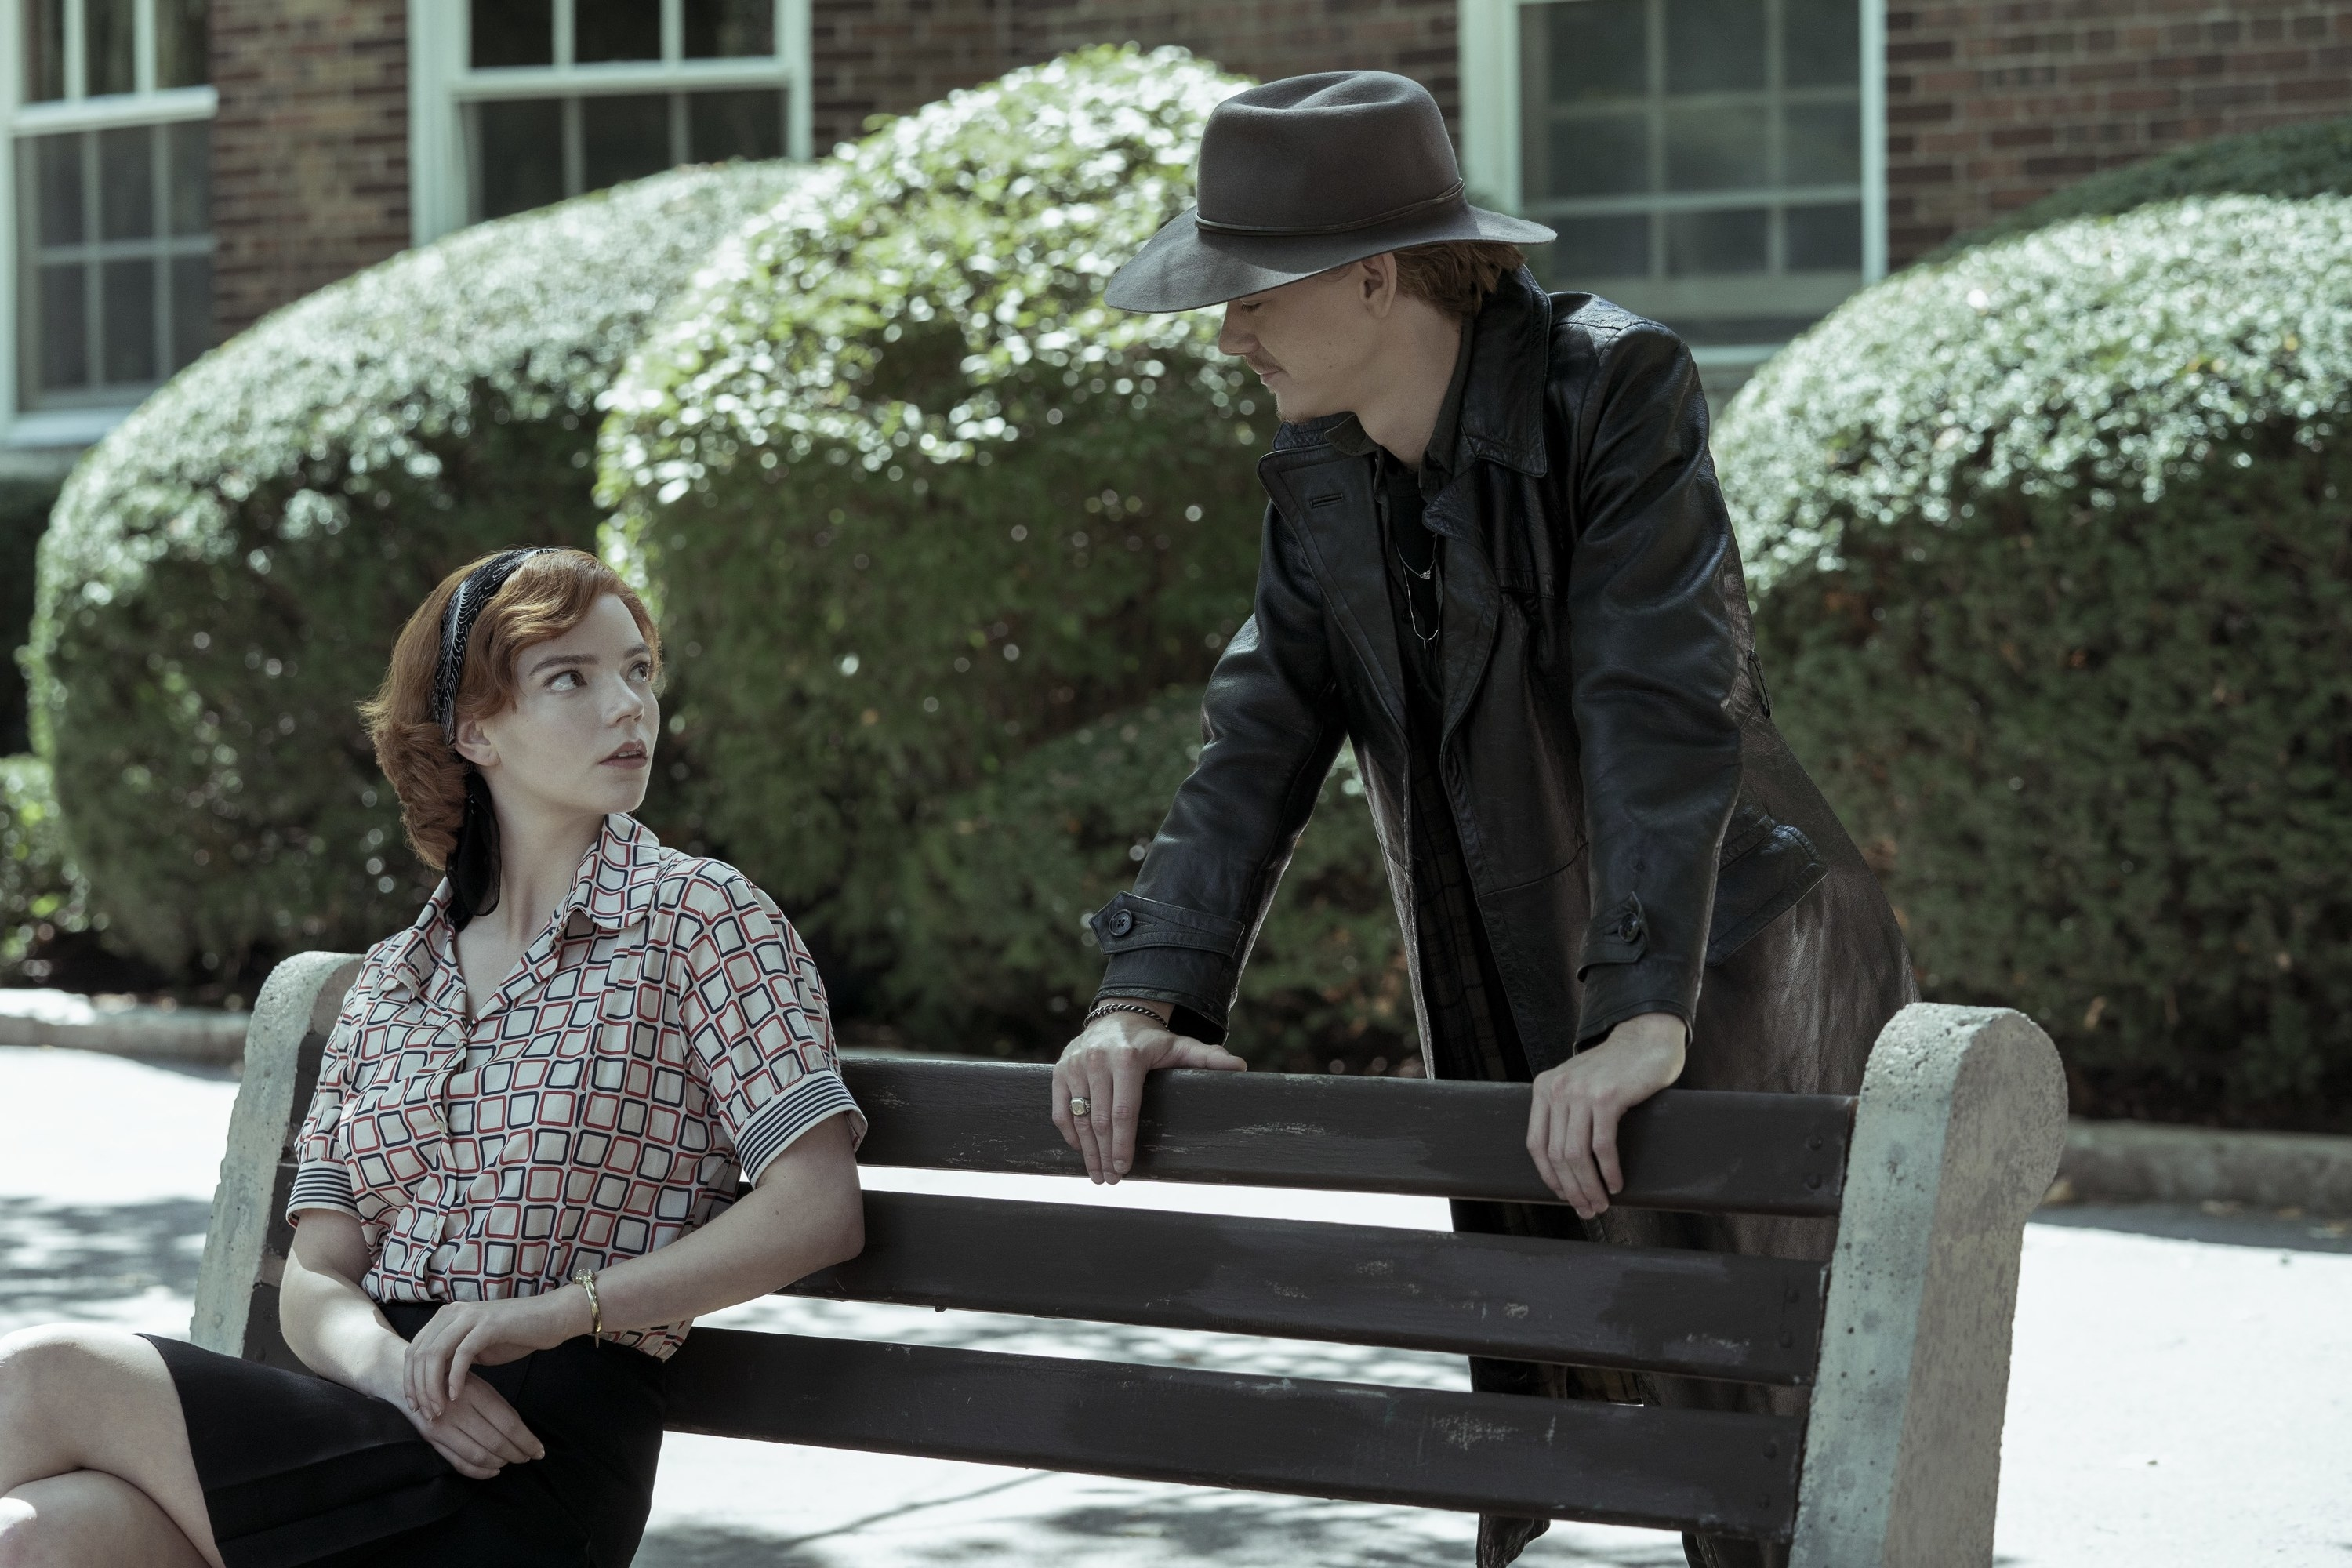 Beth sitting on a bench while Benny stands next to her